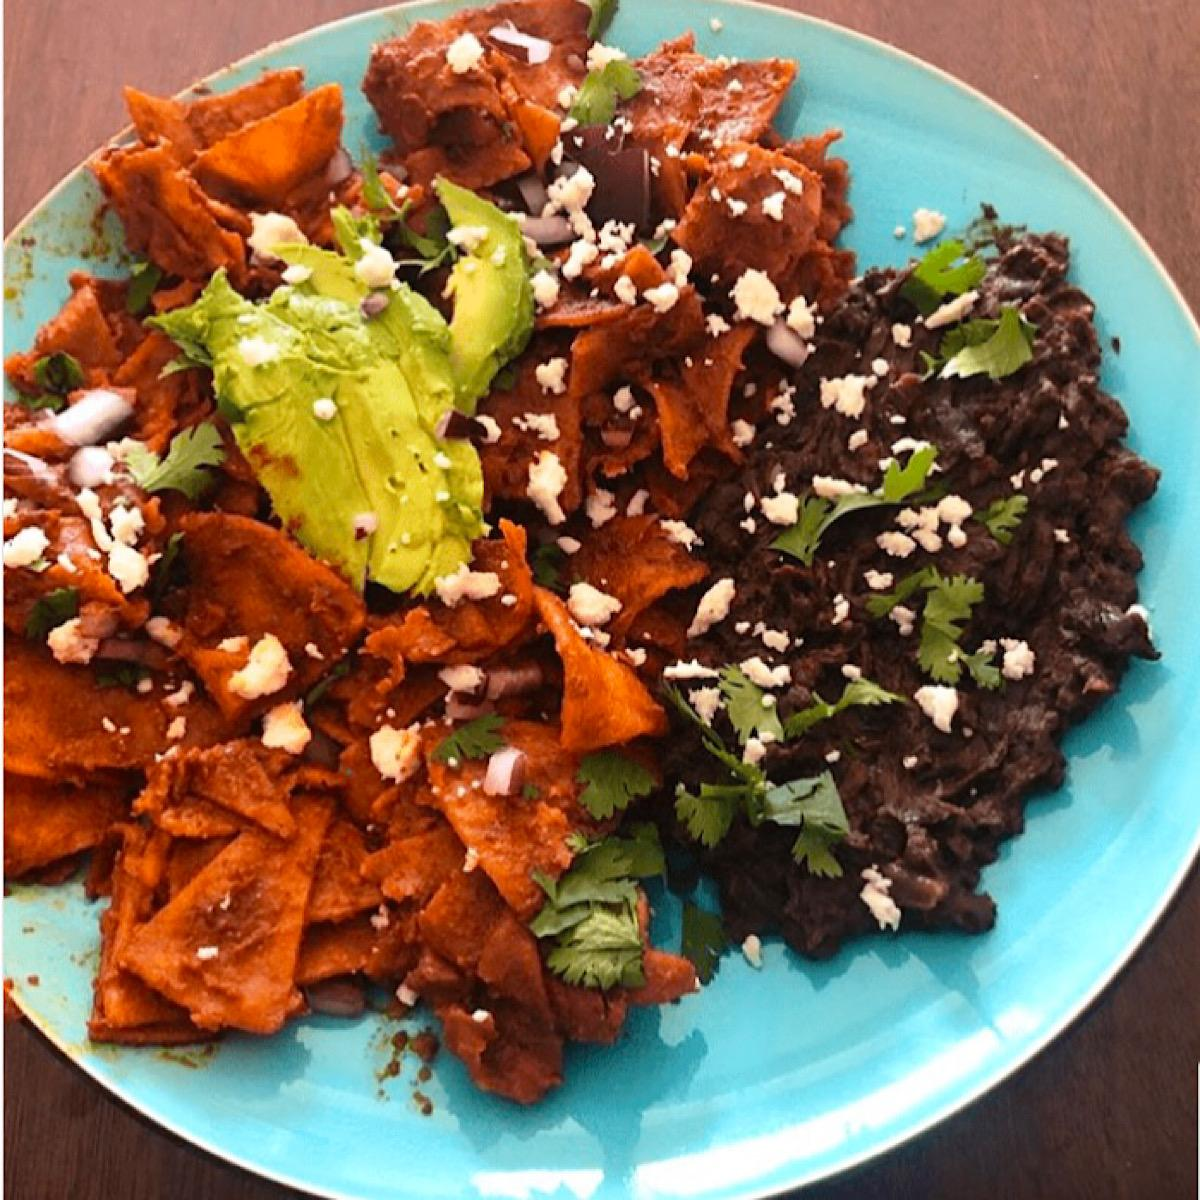 Chilaquiles with refried black beans